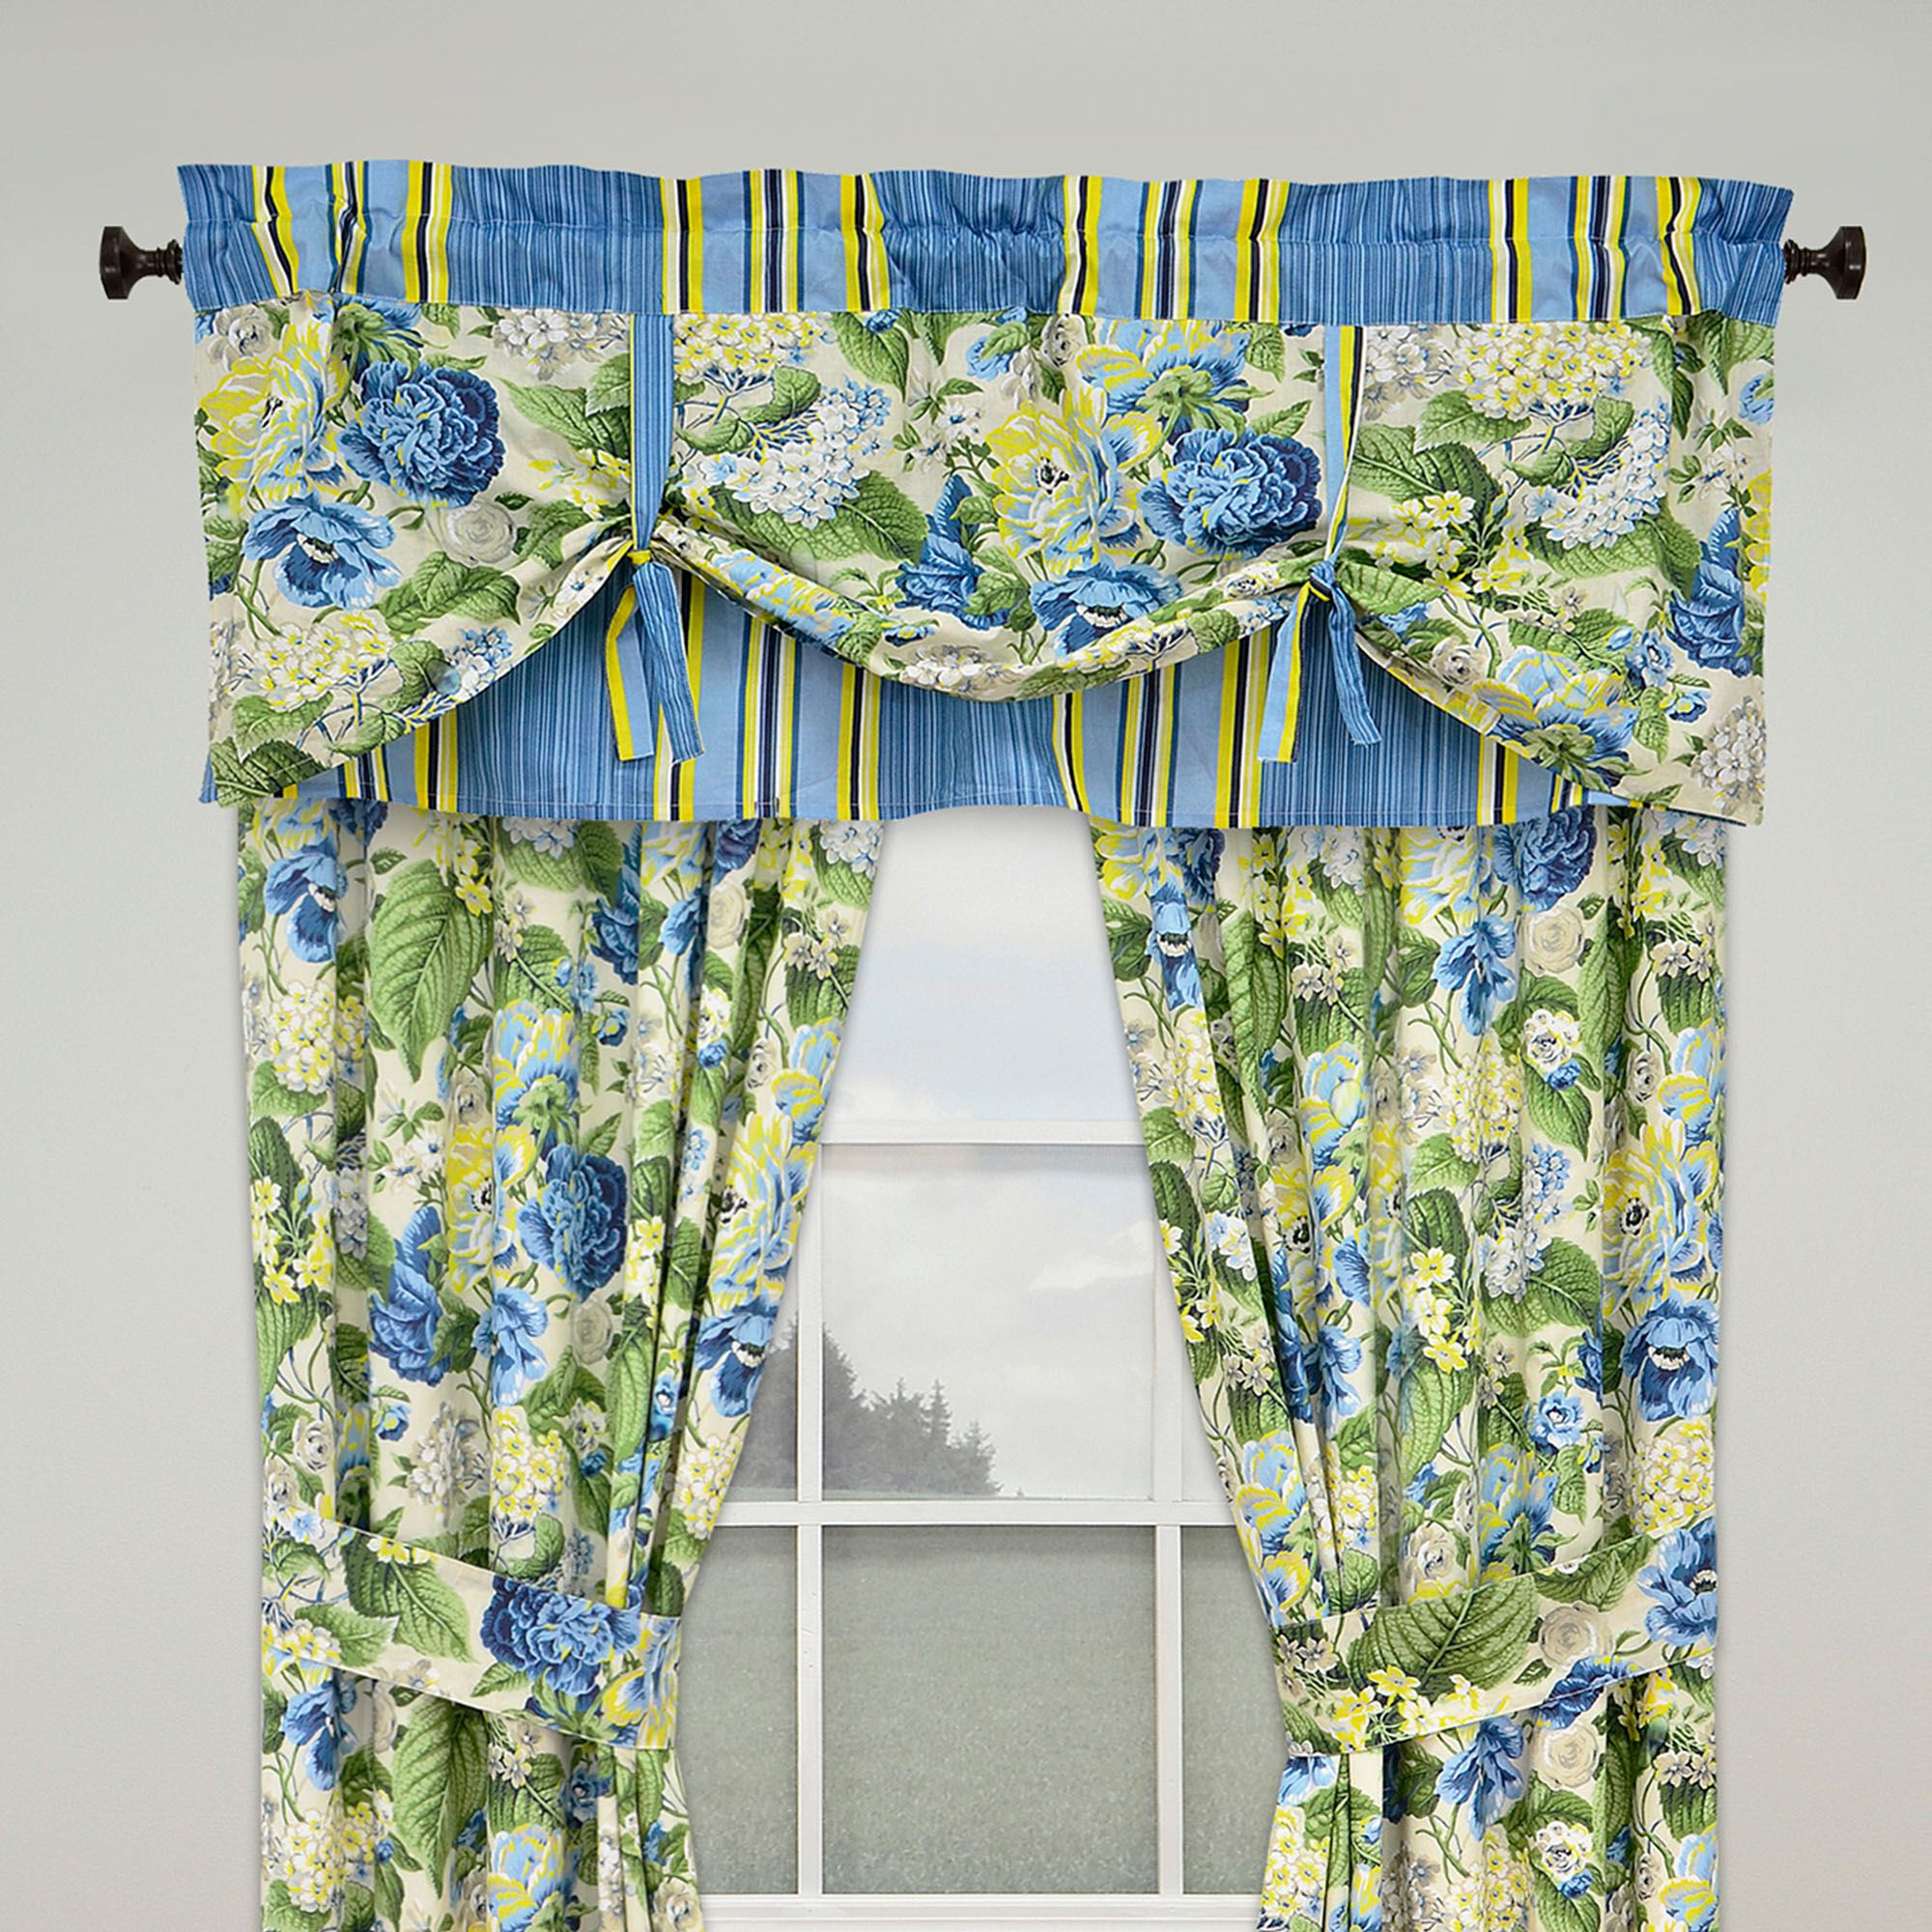 designs and jcpenney enchanting nice for balloon curtains window cool valances covering clearance drapes dining curtain treatments waverly living shades lovely of valance room